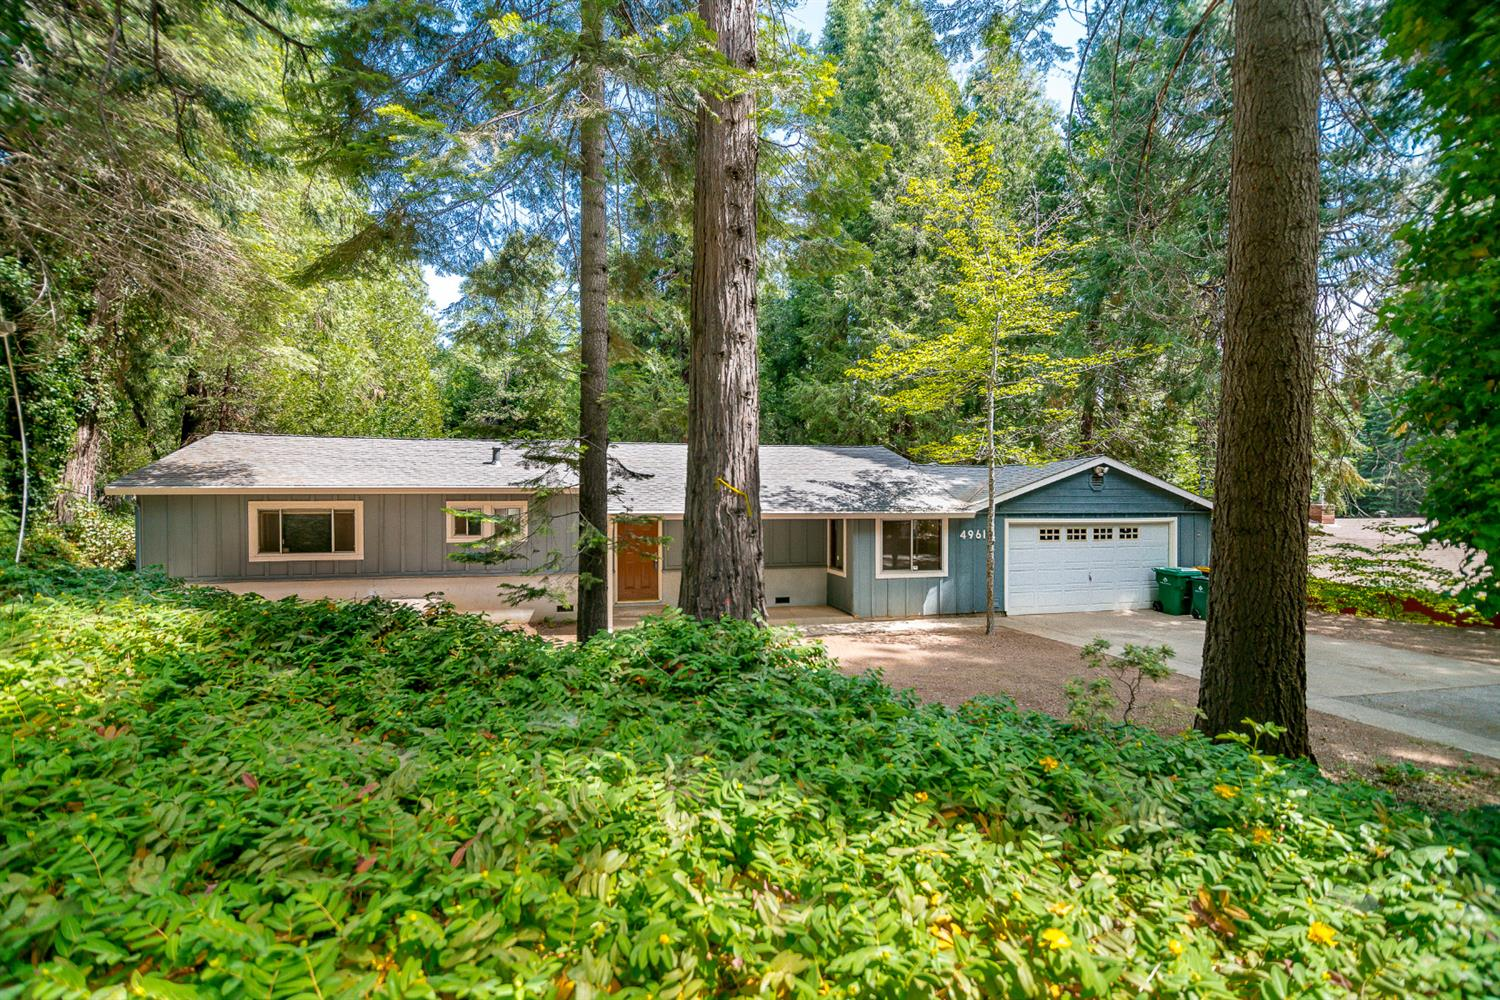 Are you looking for your own piece of private paradise near Apple Hill?  Do you need 3 bedrooms and 2 baths?  How about a large lot with sheds and a dog run?  Central heat and air!  Brand new carpet!  Newer roof! Buy this home today!